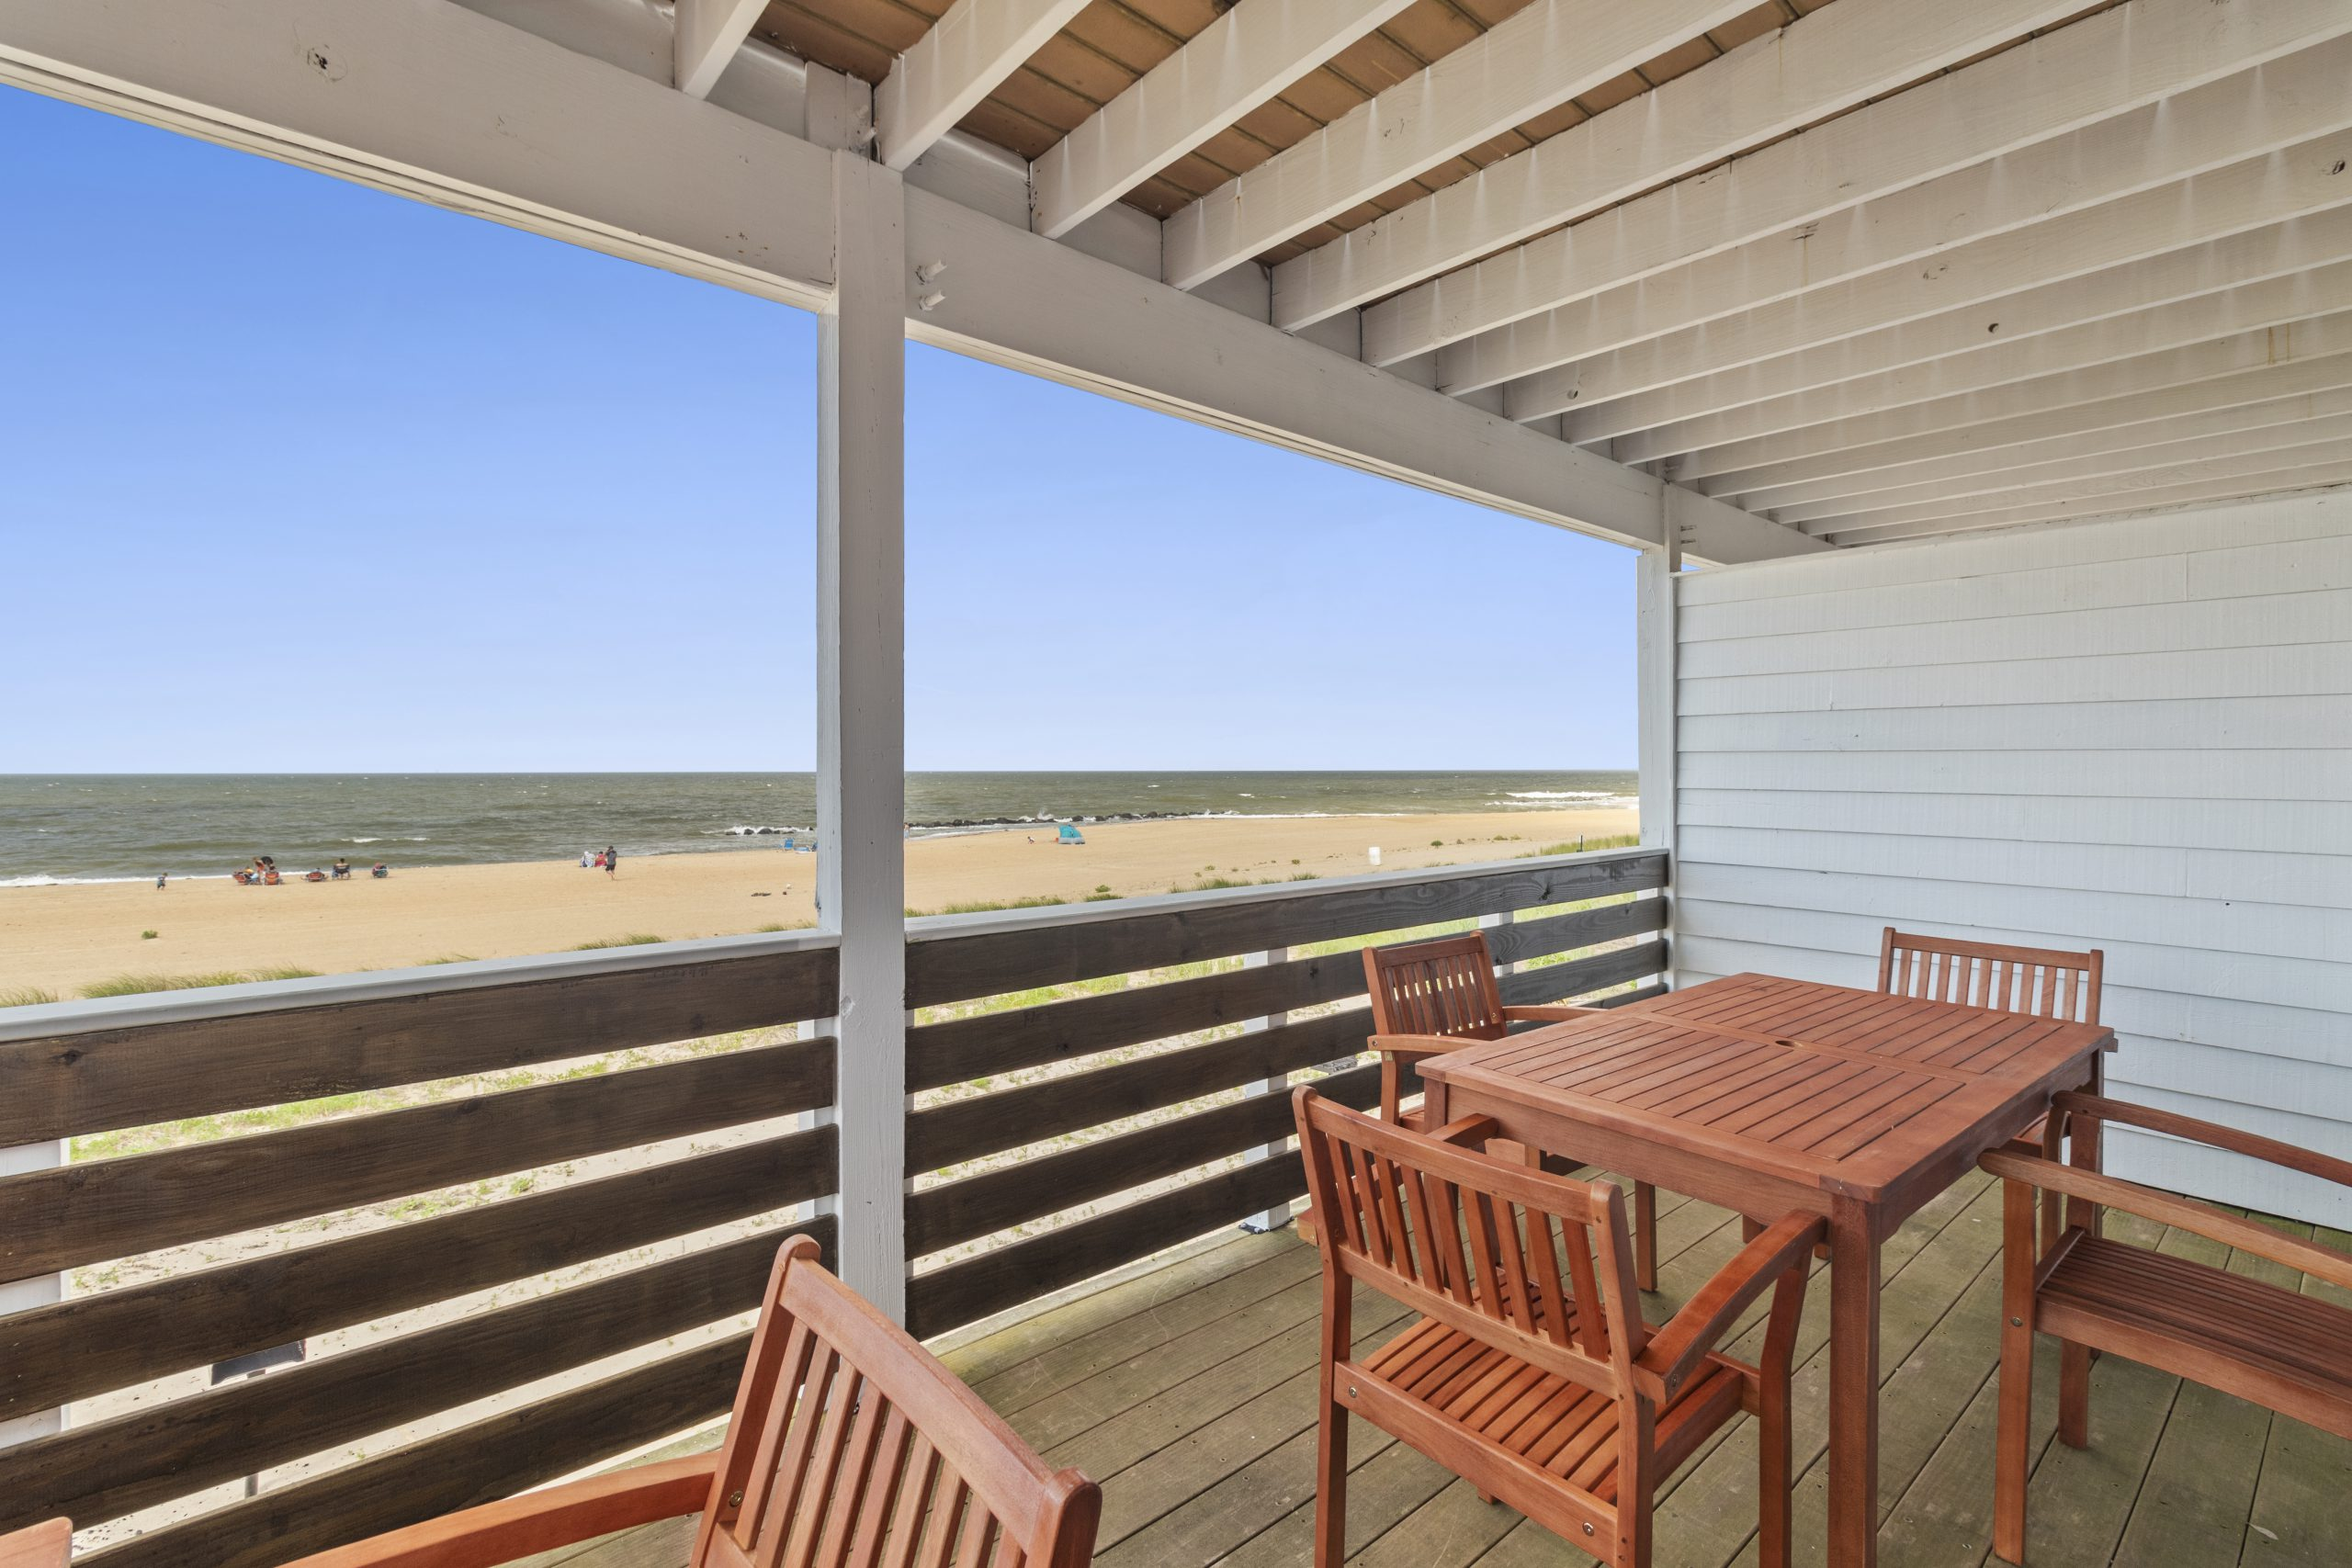 view from a deck with wood patio furniture and view of the beach